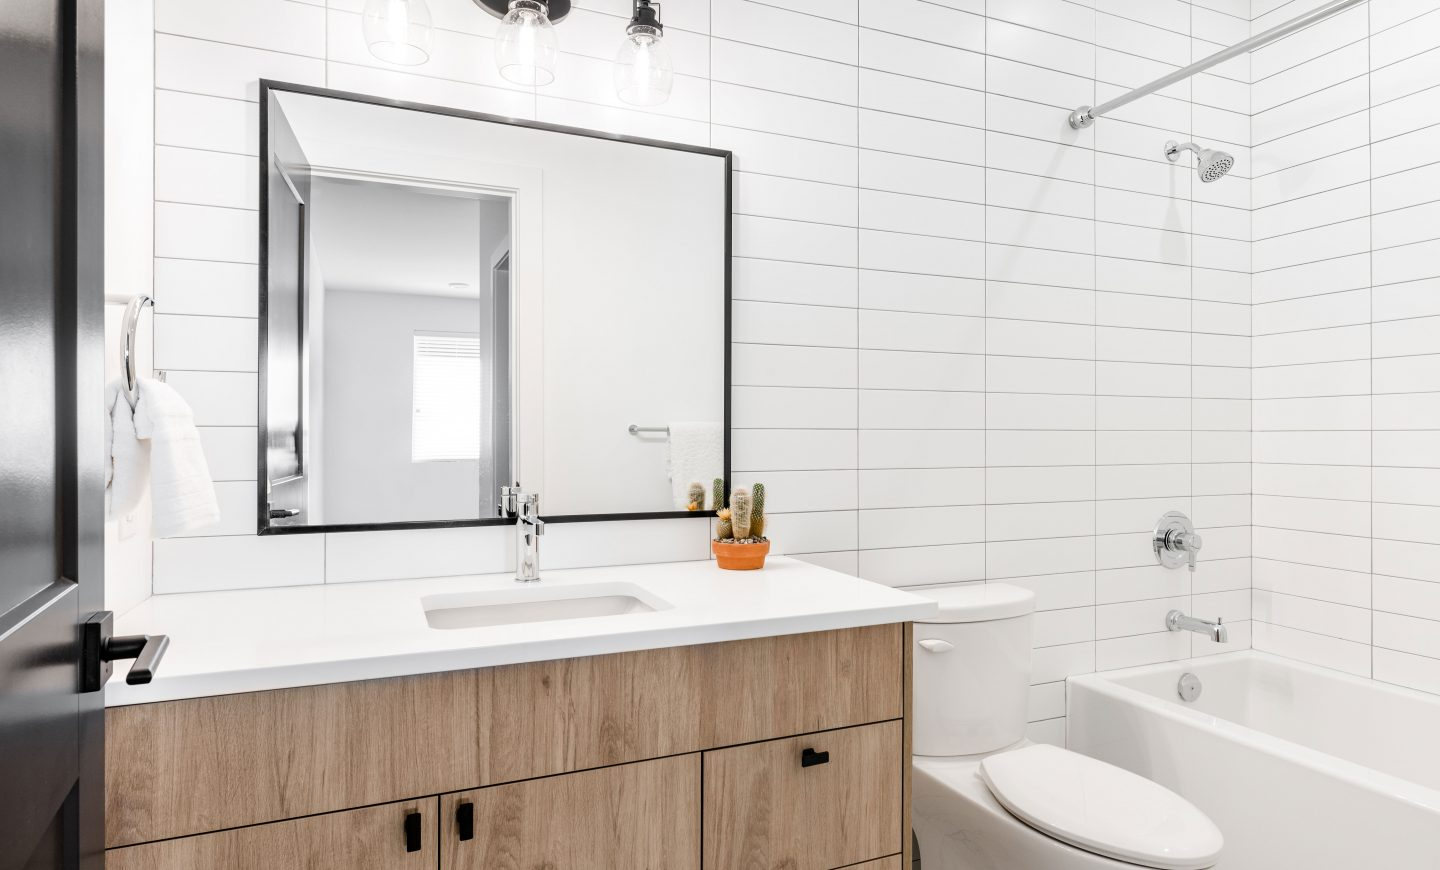 Cabico Custom Cabinets - The Lookout bathroom project - overview